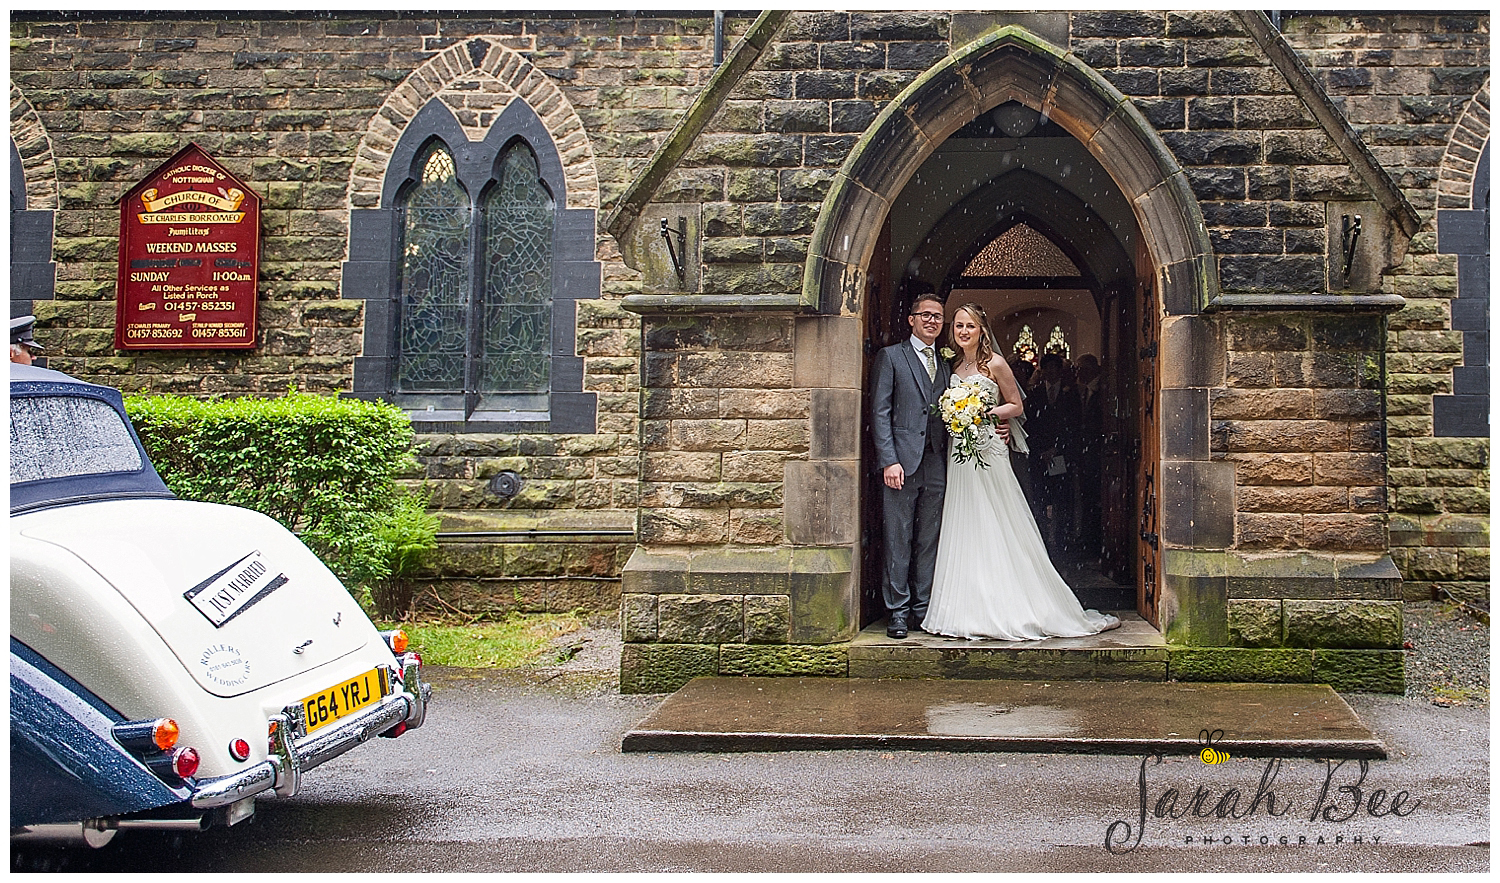 wedding photography with sarah bee photography, Peruga woodheys glossop, documentory photography wedding photographer_0203.jpg